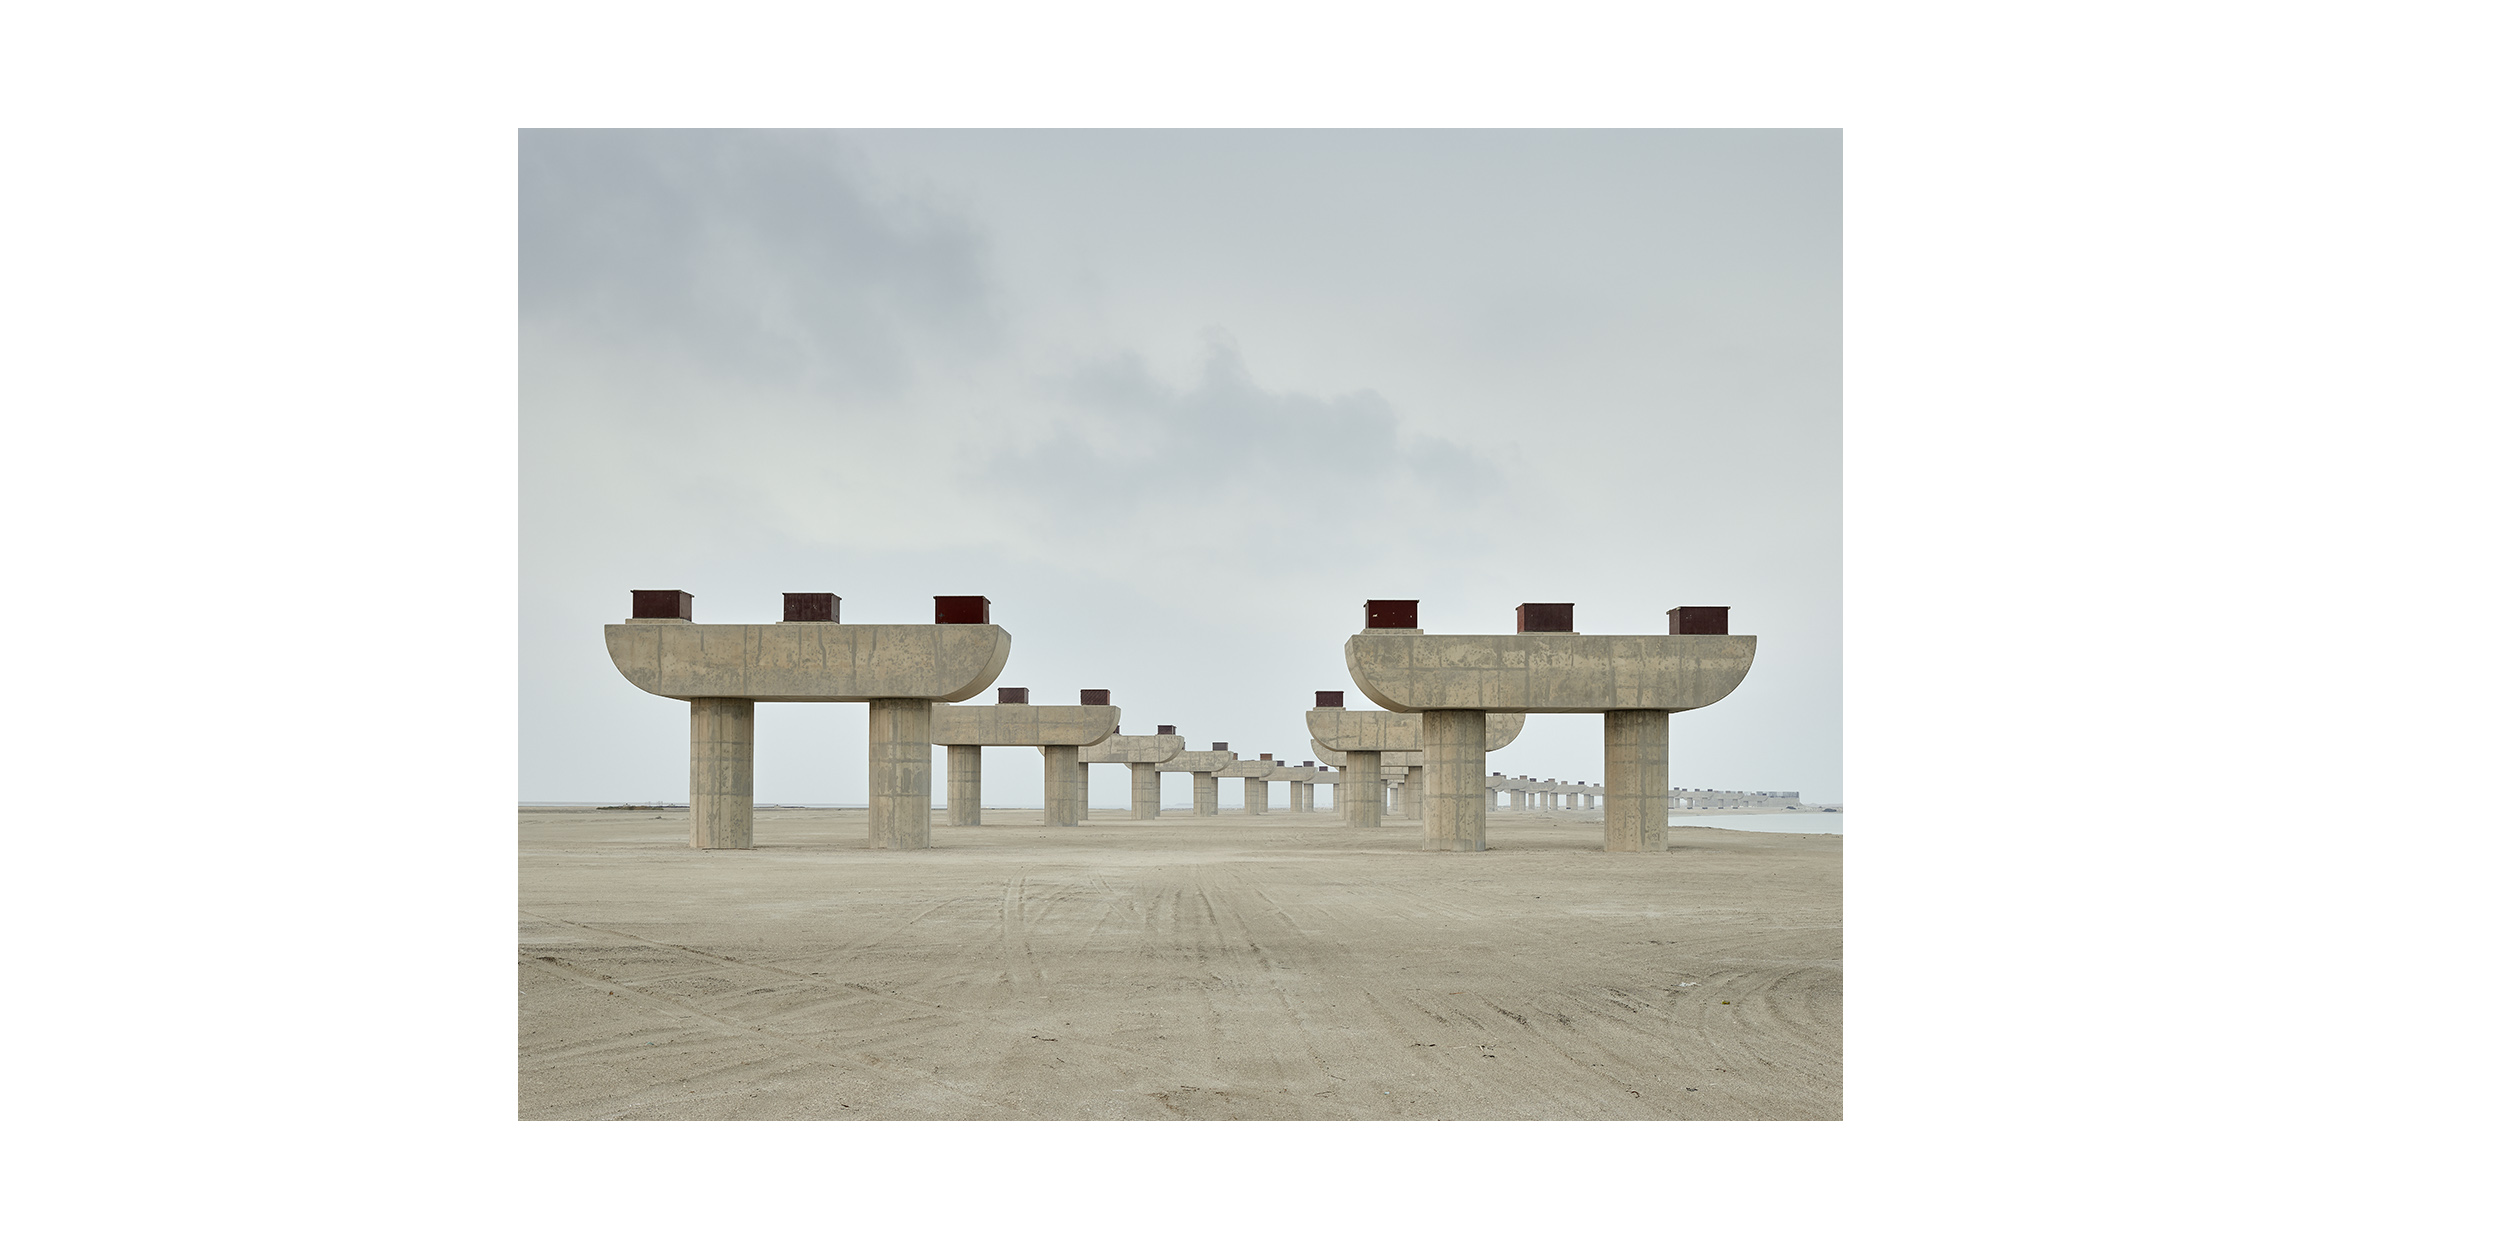 Bridge, Jebel Ali, Dubai, from the series 'The Edge'